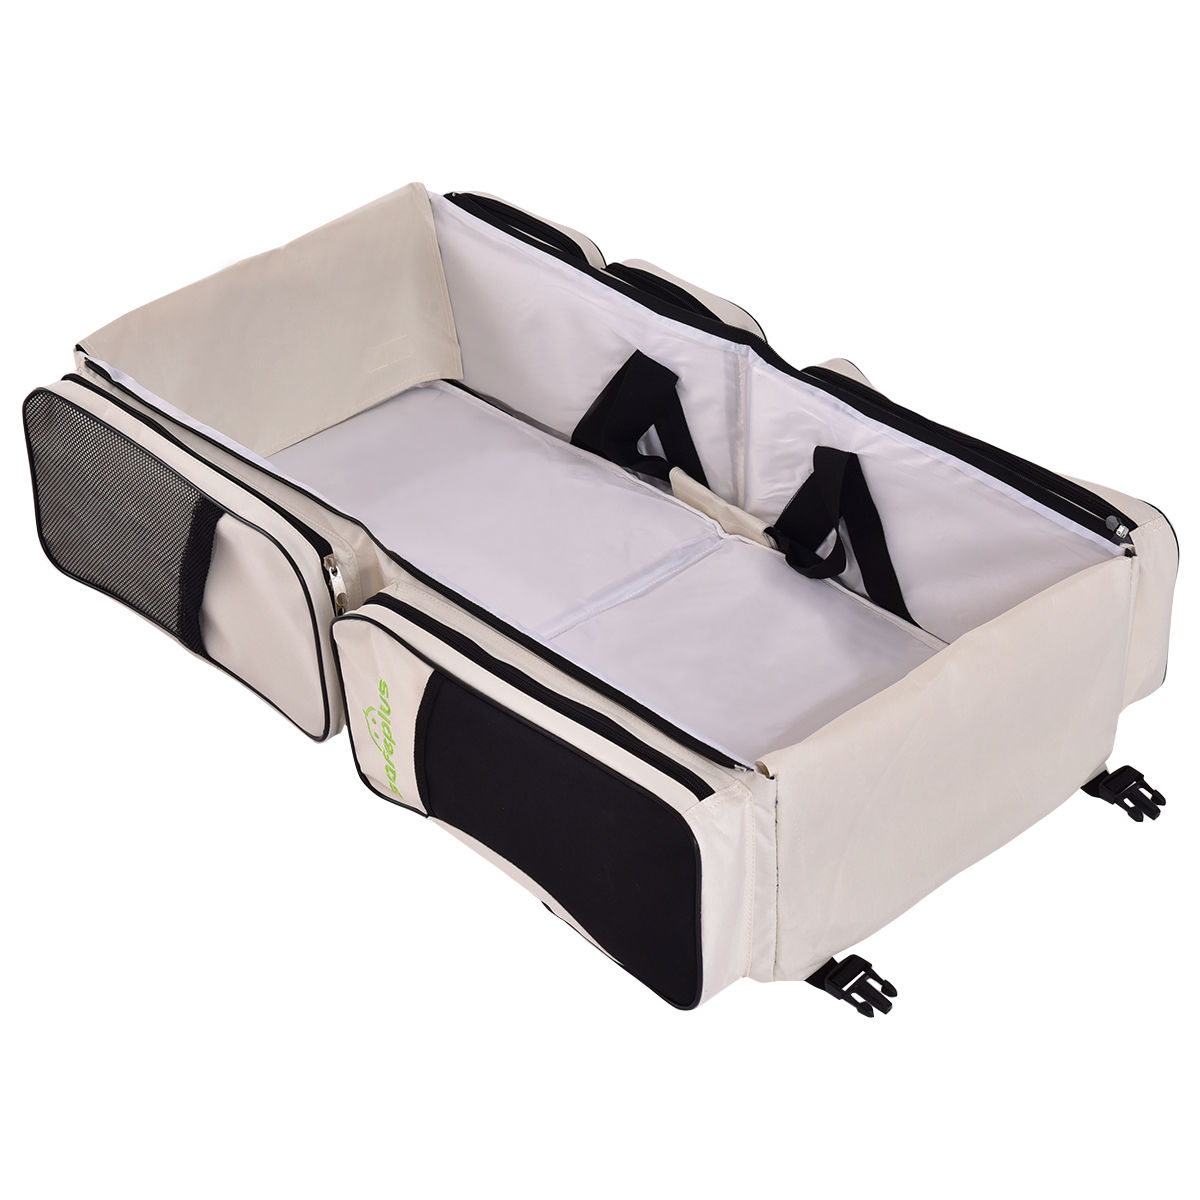 3 in 1 Travel Diaper Bag Backpack Changing Station,Travel Bassinet Foldable Baby Bed,Portable Bassinets for Baby Girls Boys Travel Crib Infant Sleeper,Baby Nest with Mattress Included